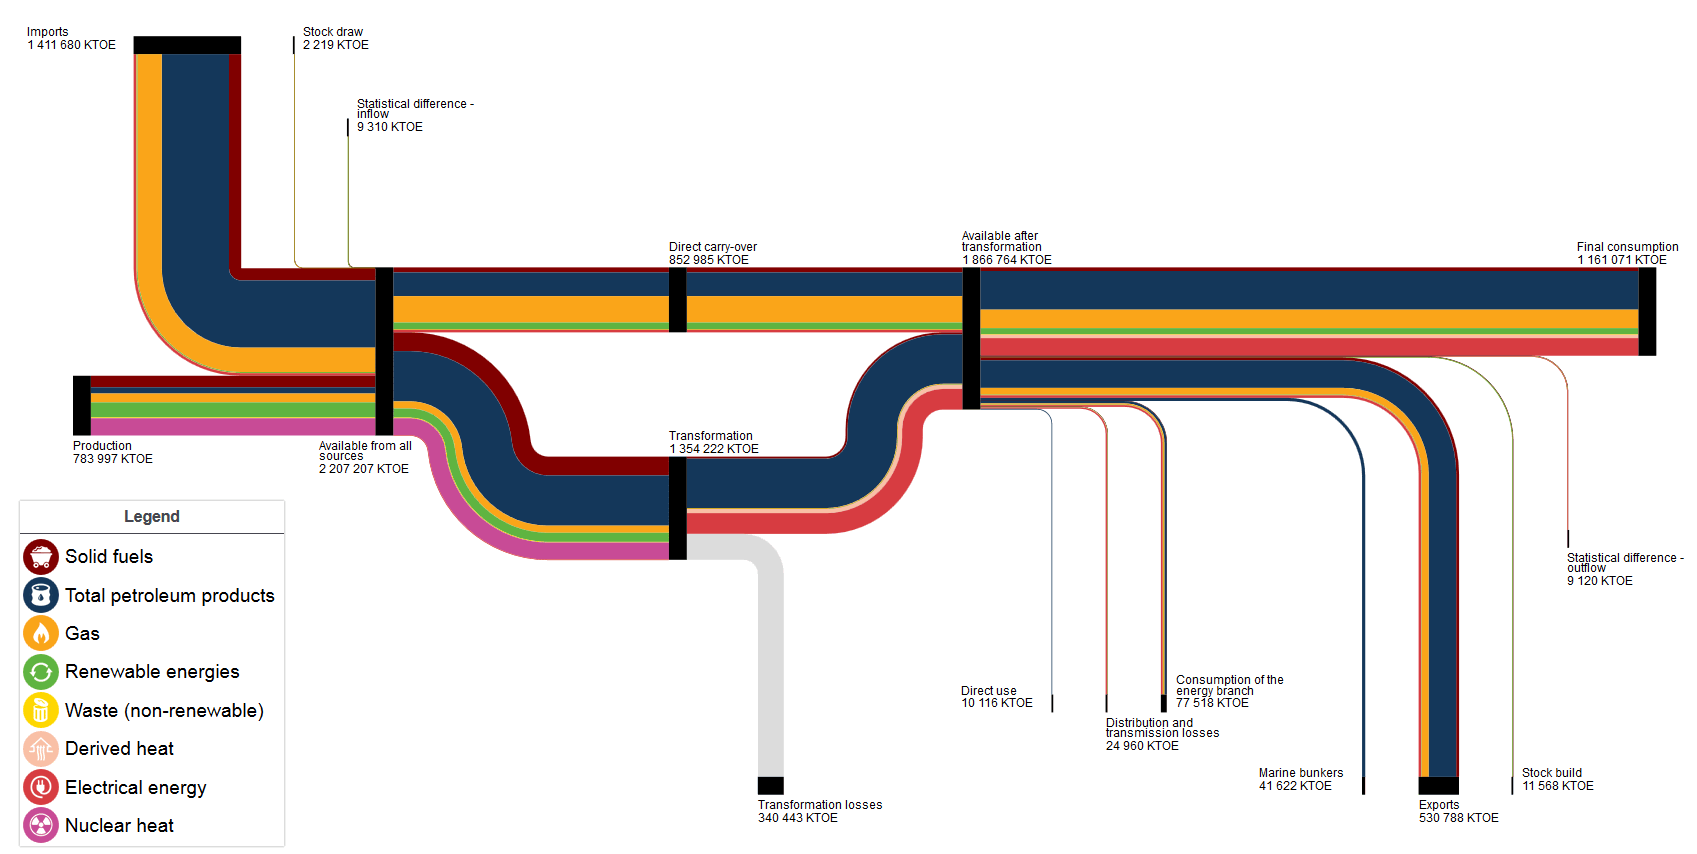 hight resolution of sankey diagrams for energy balance statistics explainedfigure 14 view of all the fuel families in the